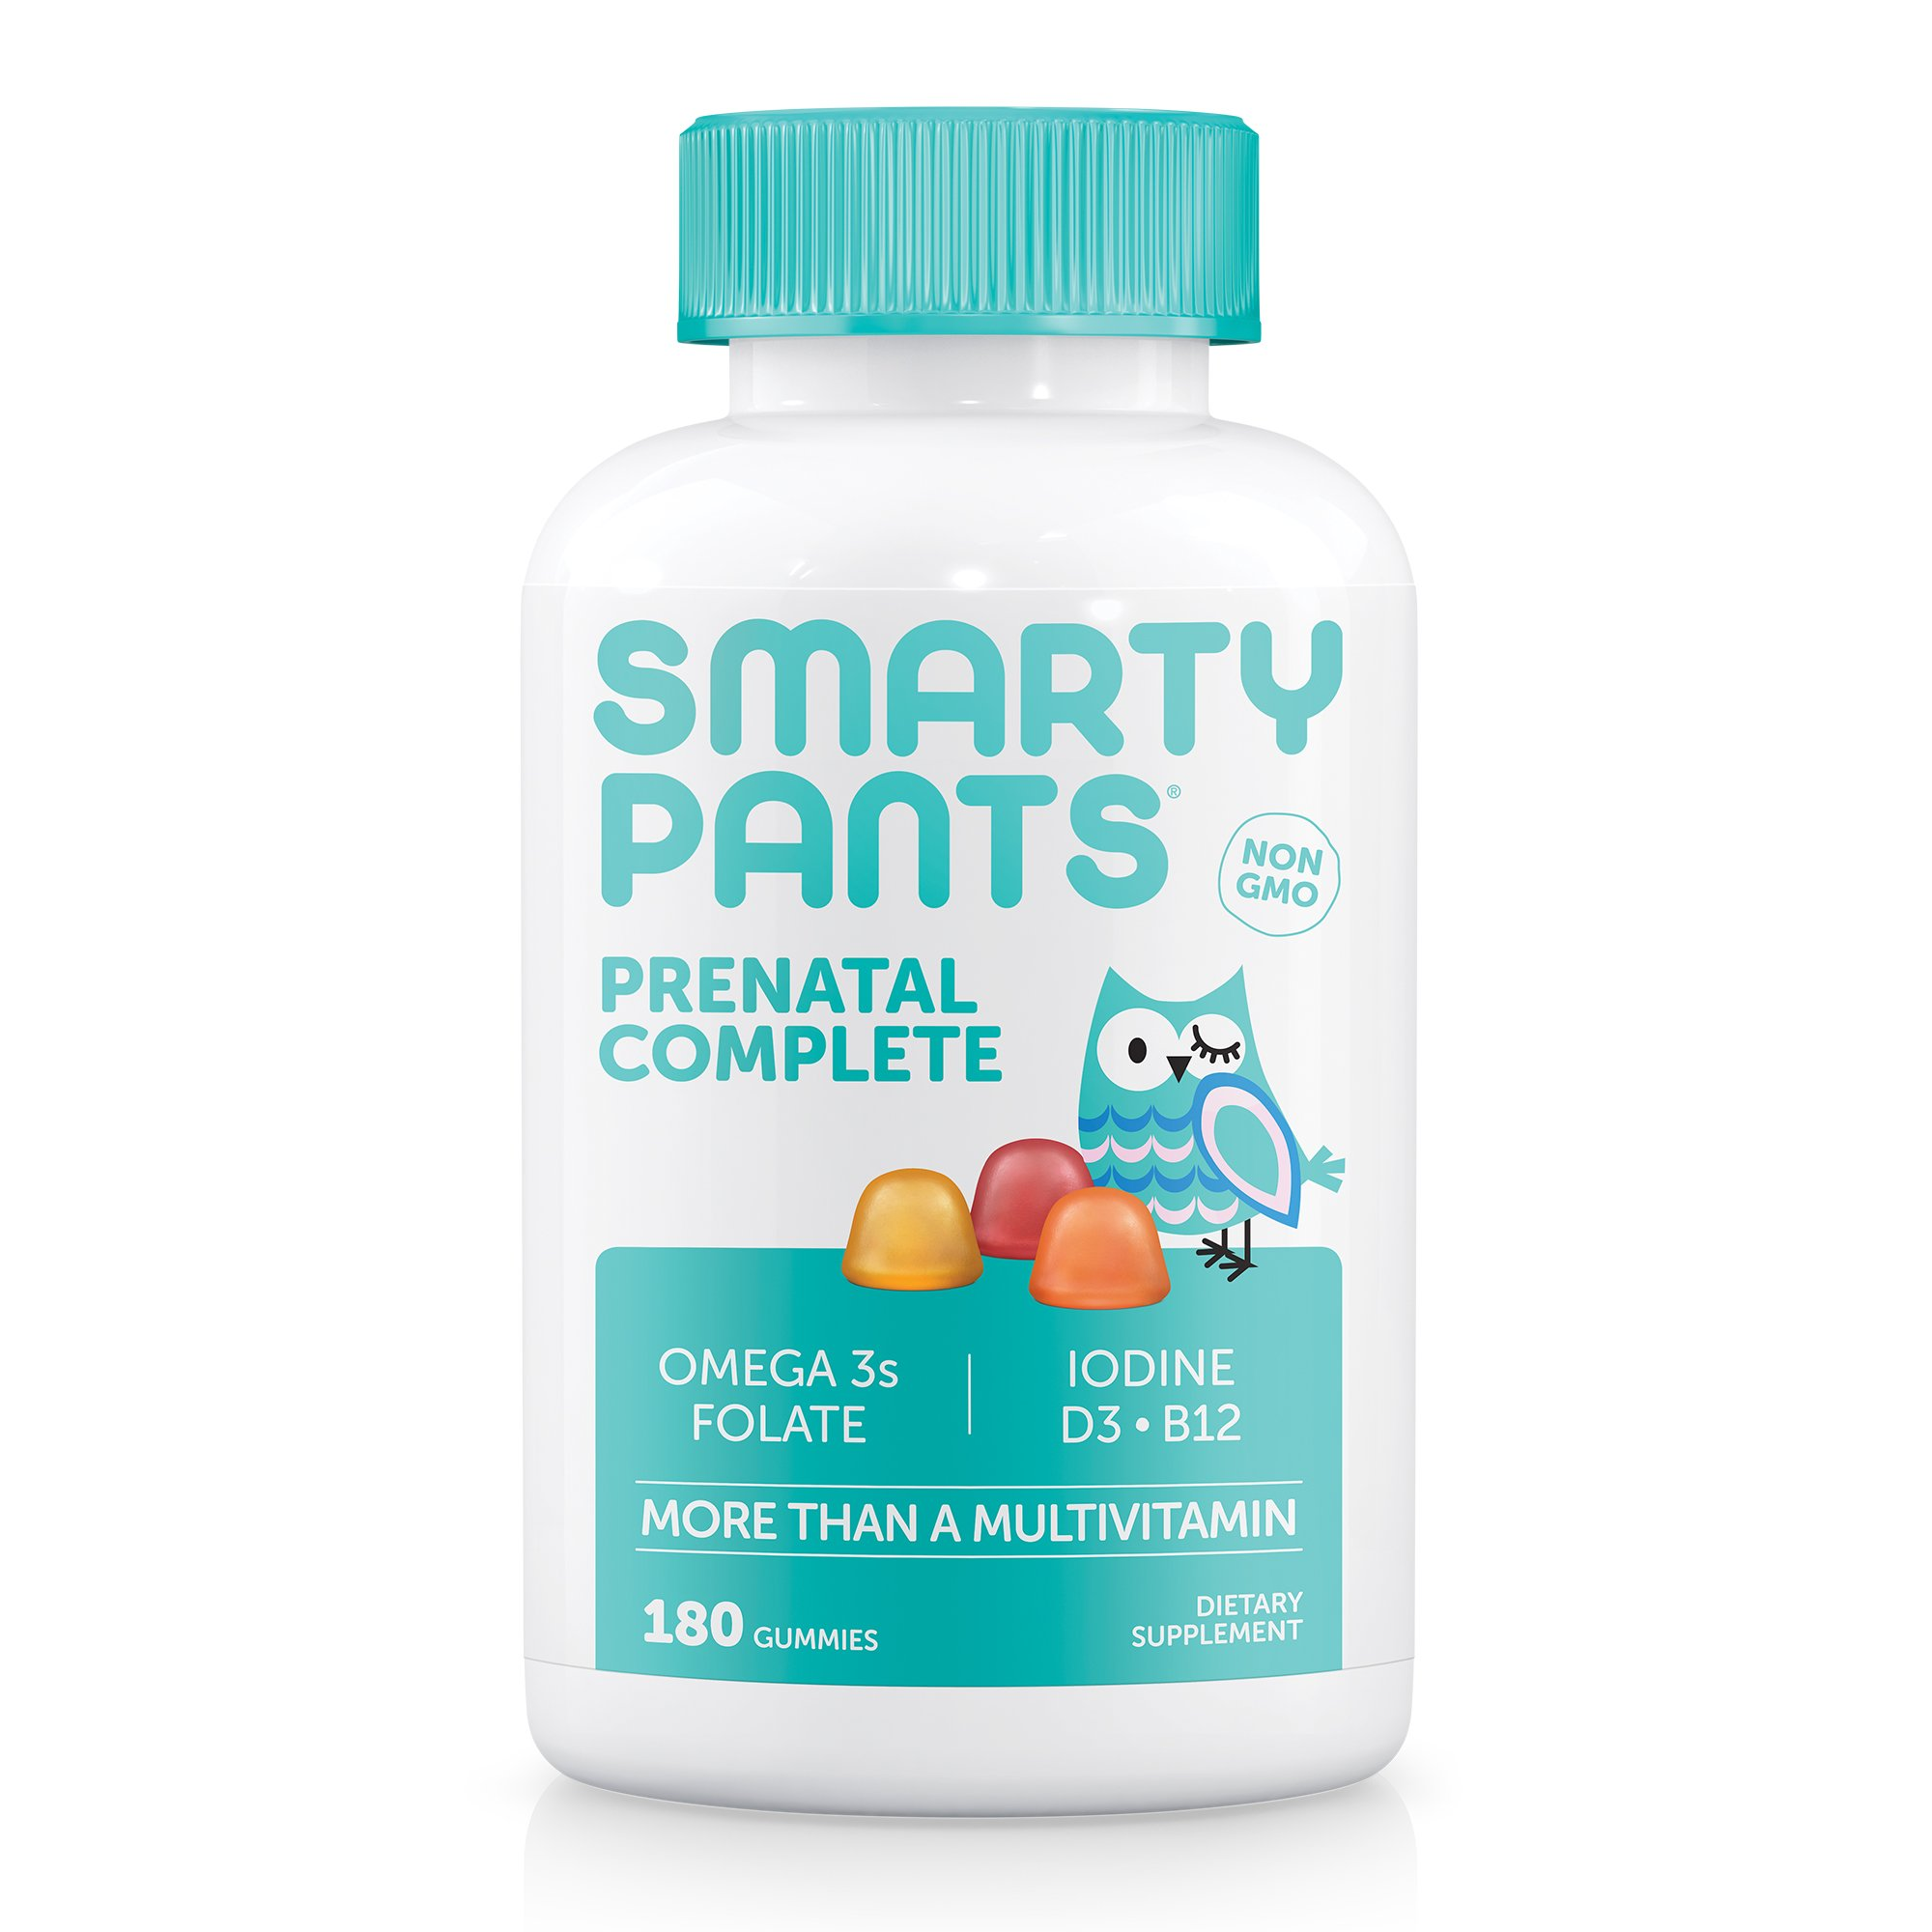 SmartyPants Prenatal Complete Daily Gummy Vitamins: Gluten Free, Multivitamin, Folate (Methylfolate)